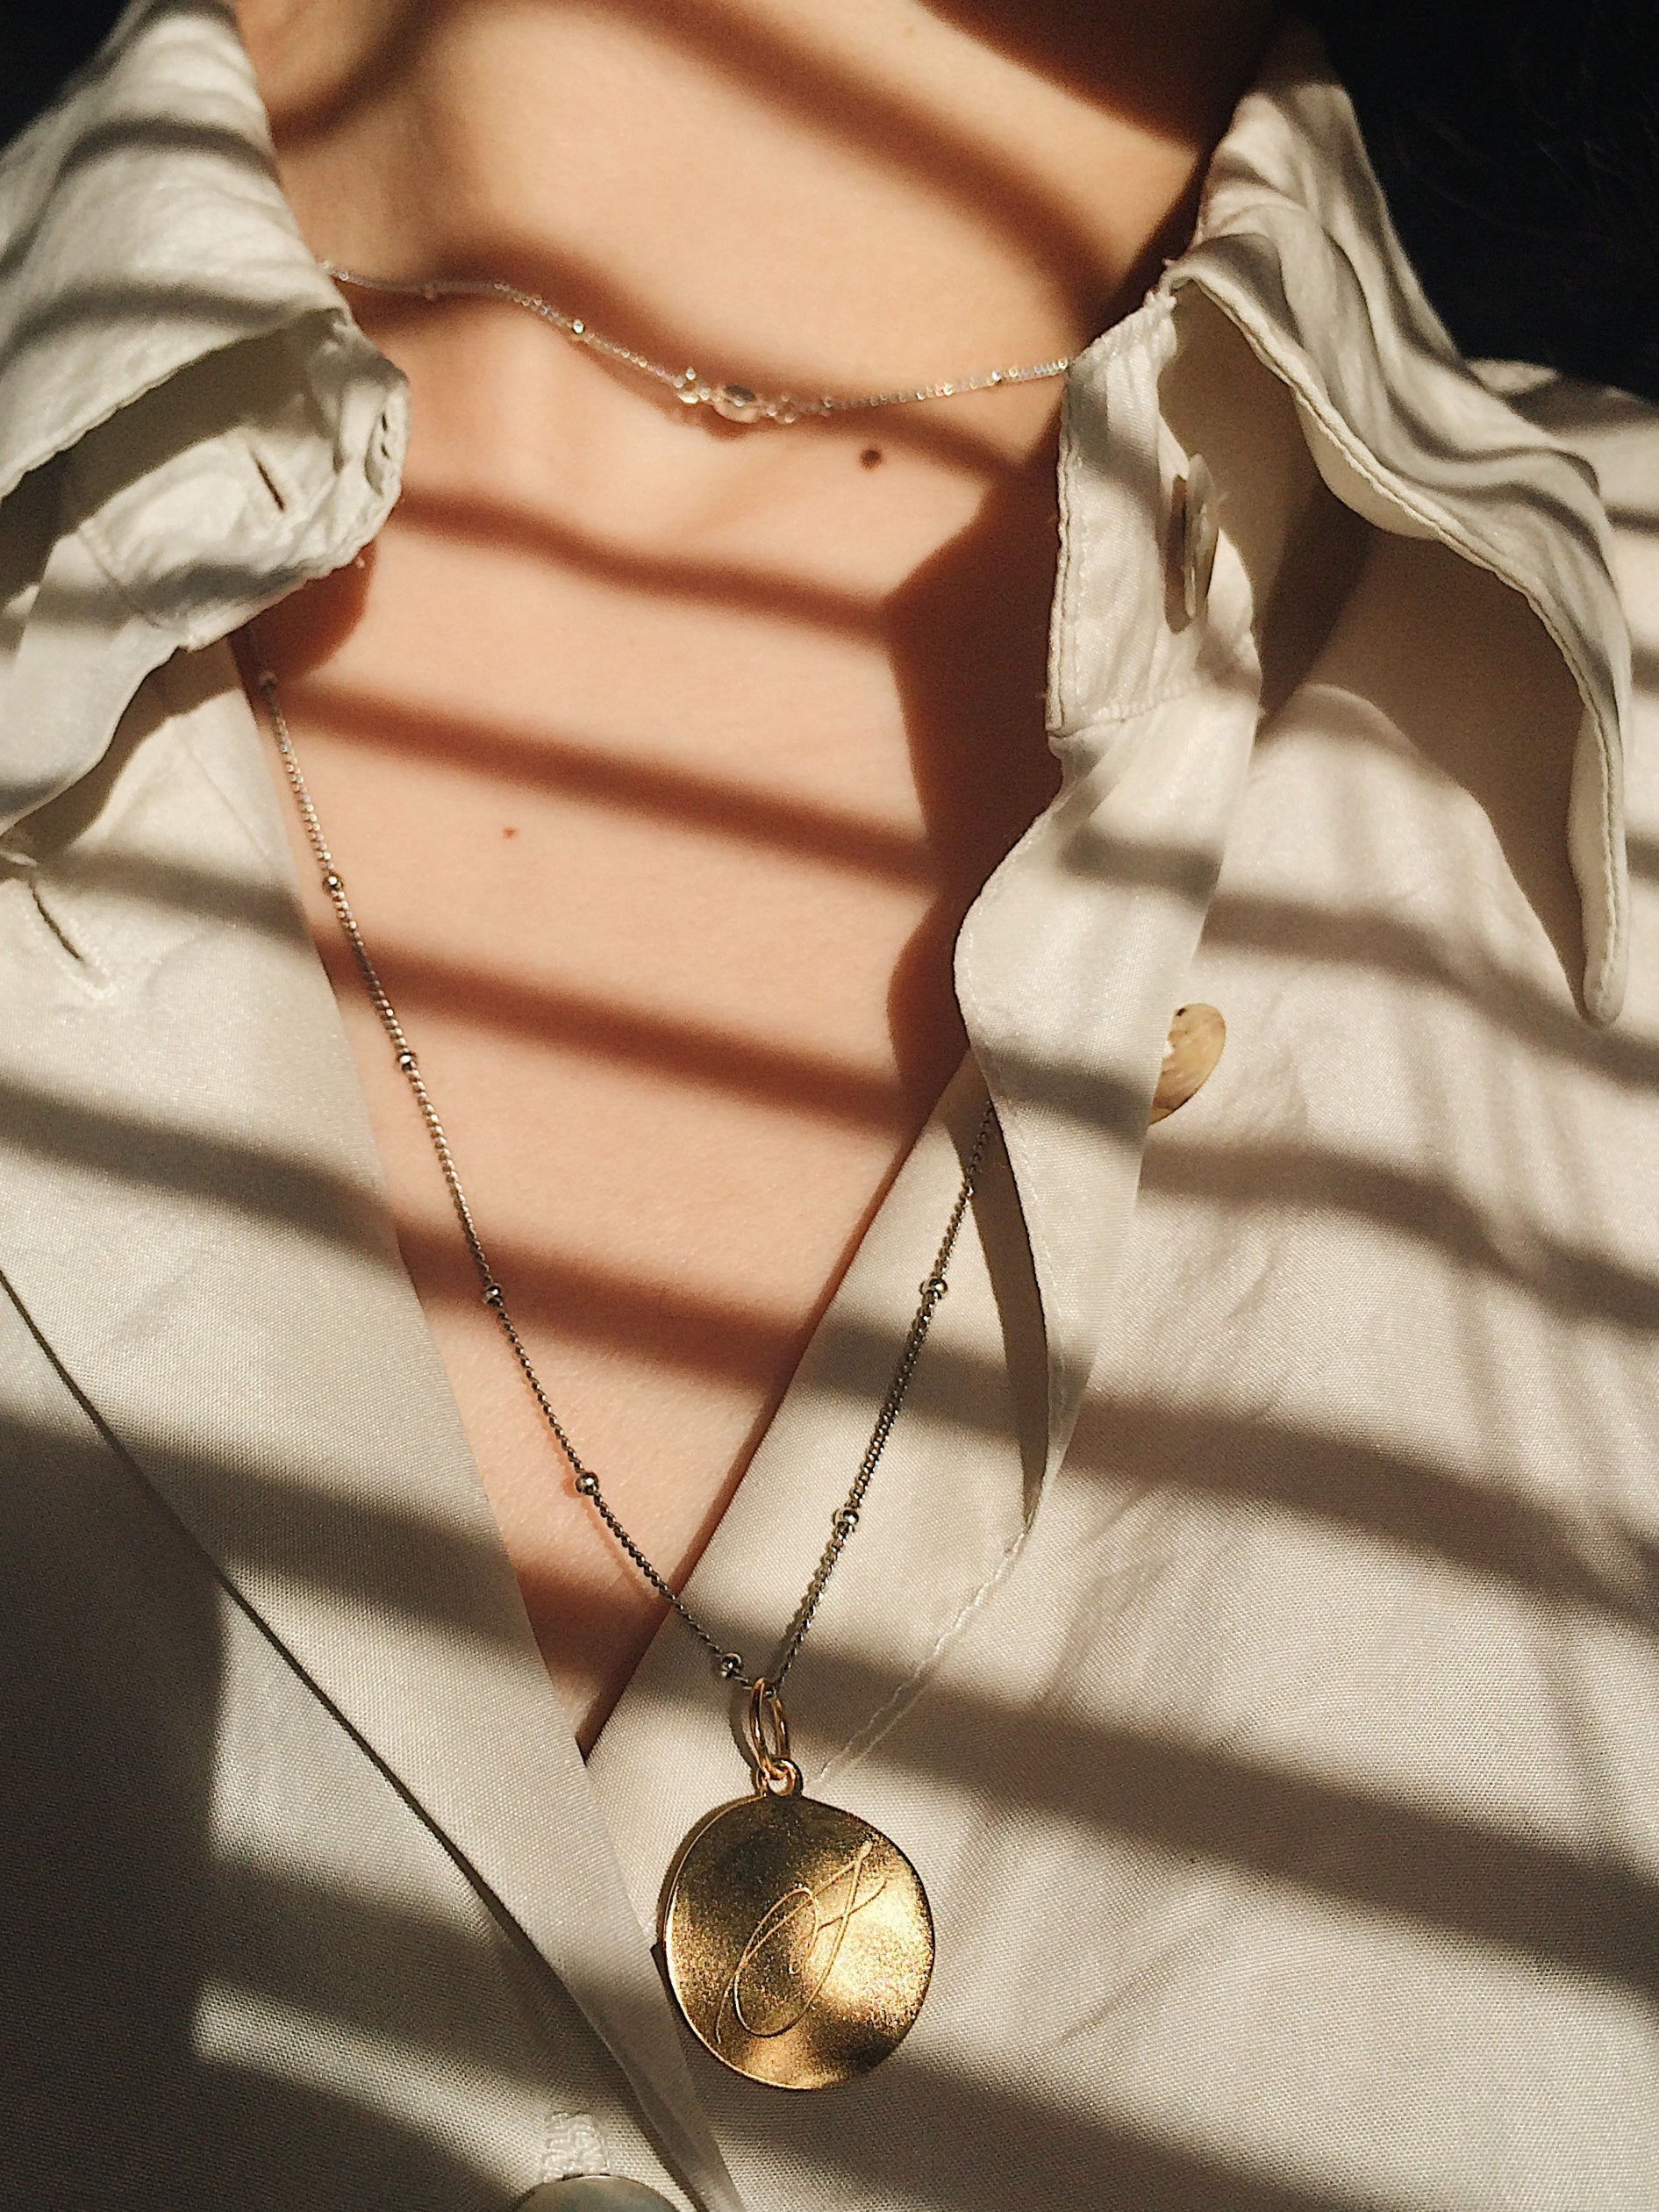 Dreamer necklace in S